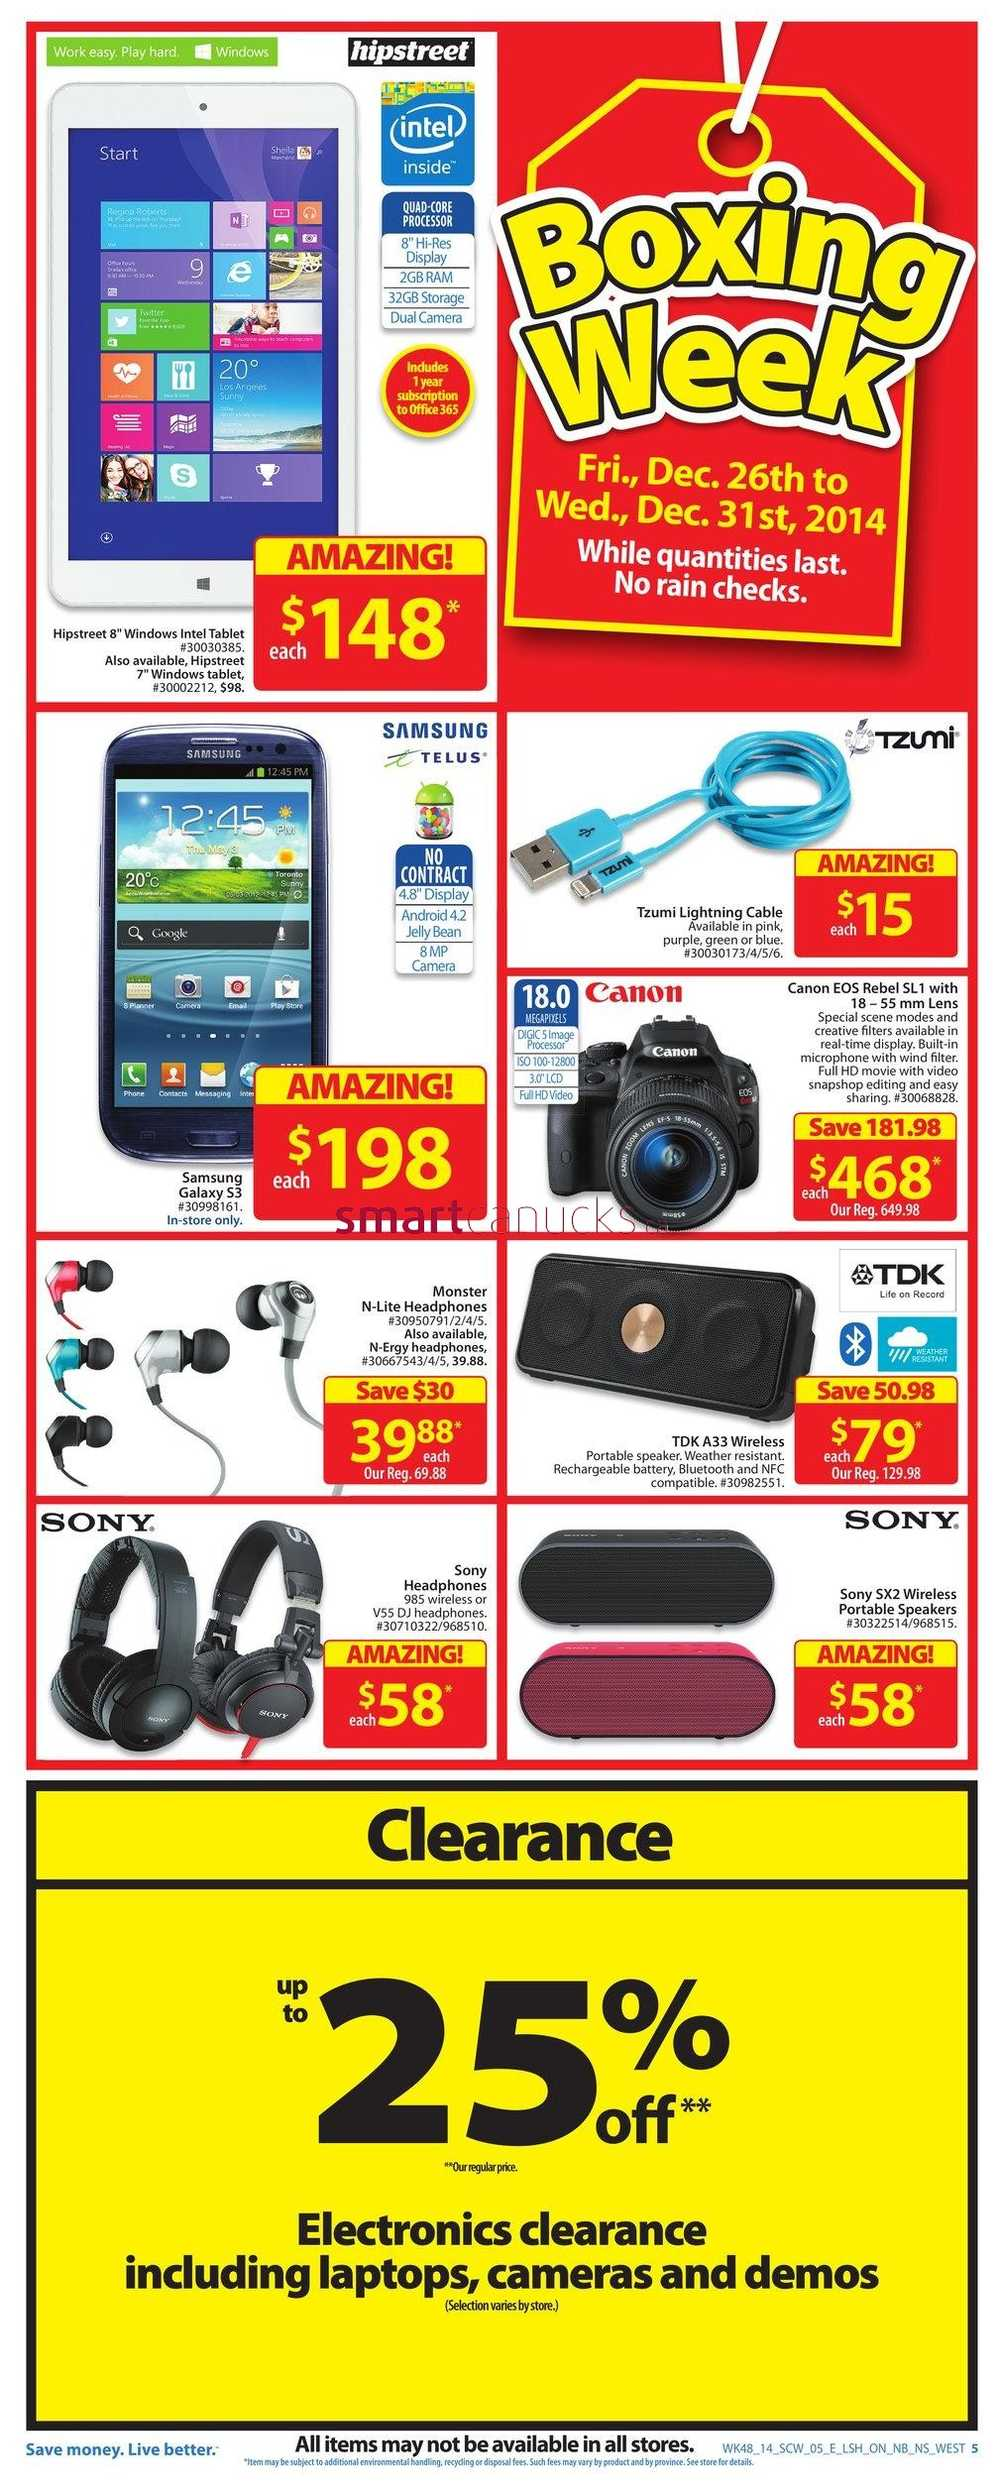 Boxing day deals walmart